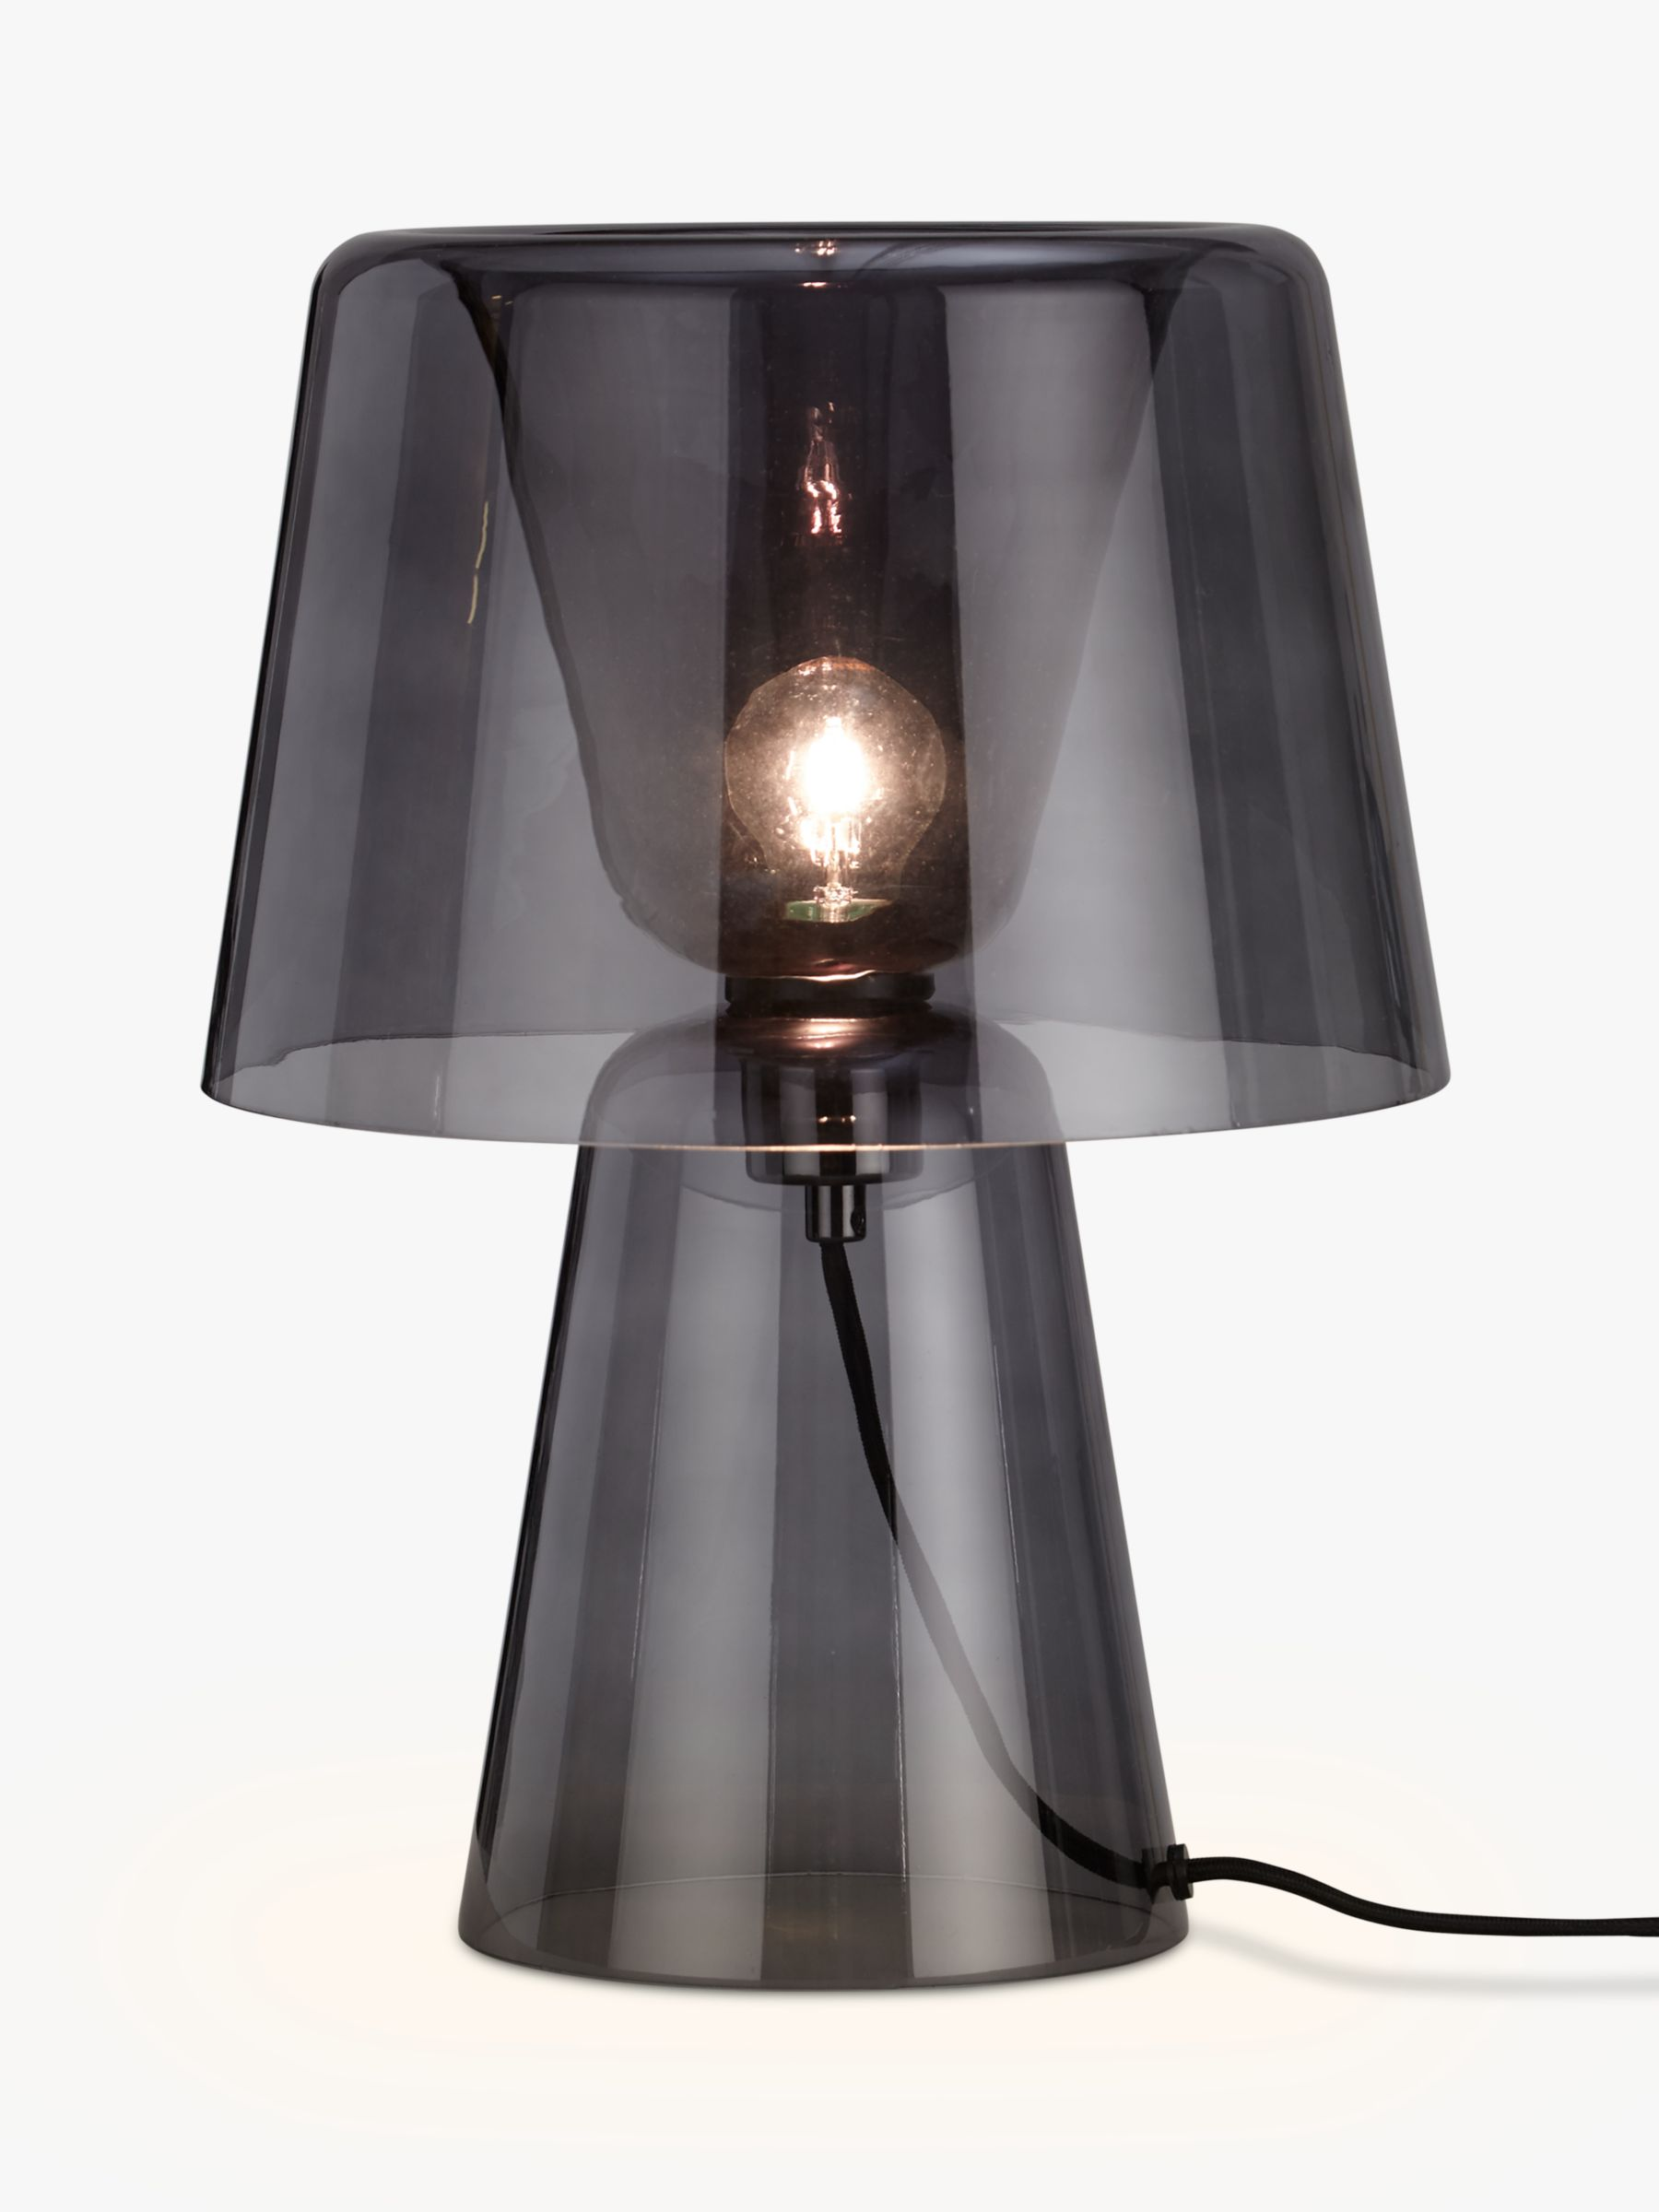 Designer Table Lamps Online Design Project By John Lewis No 001 Large Glass Table Lamp